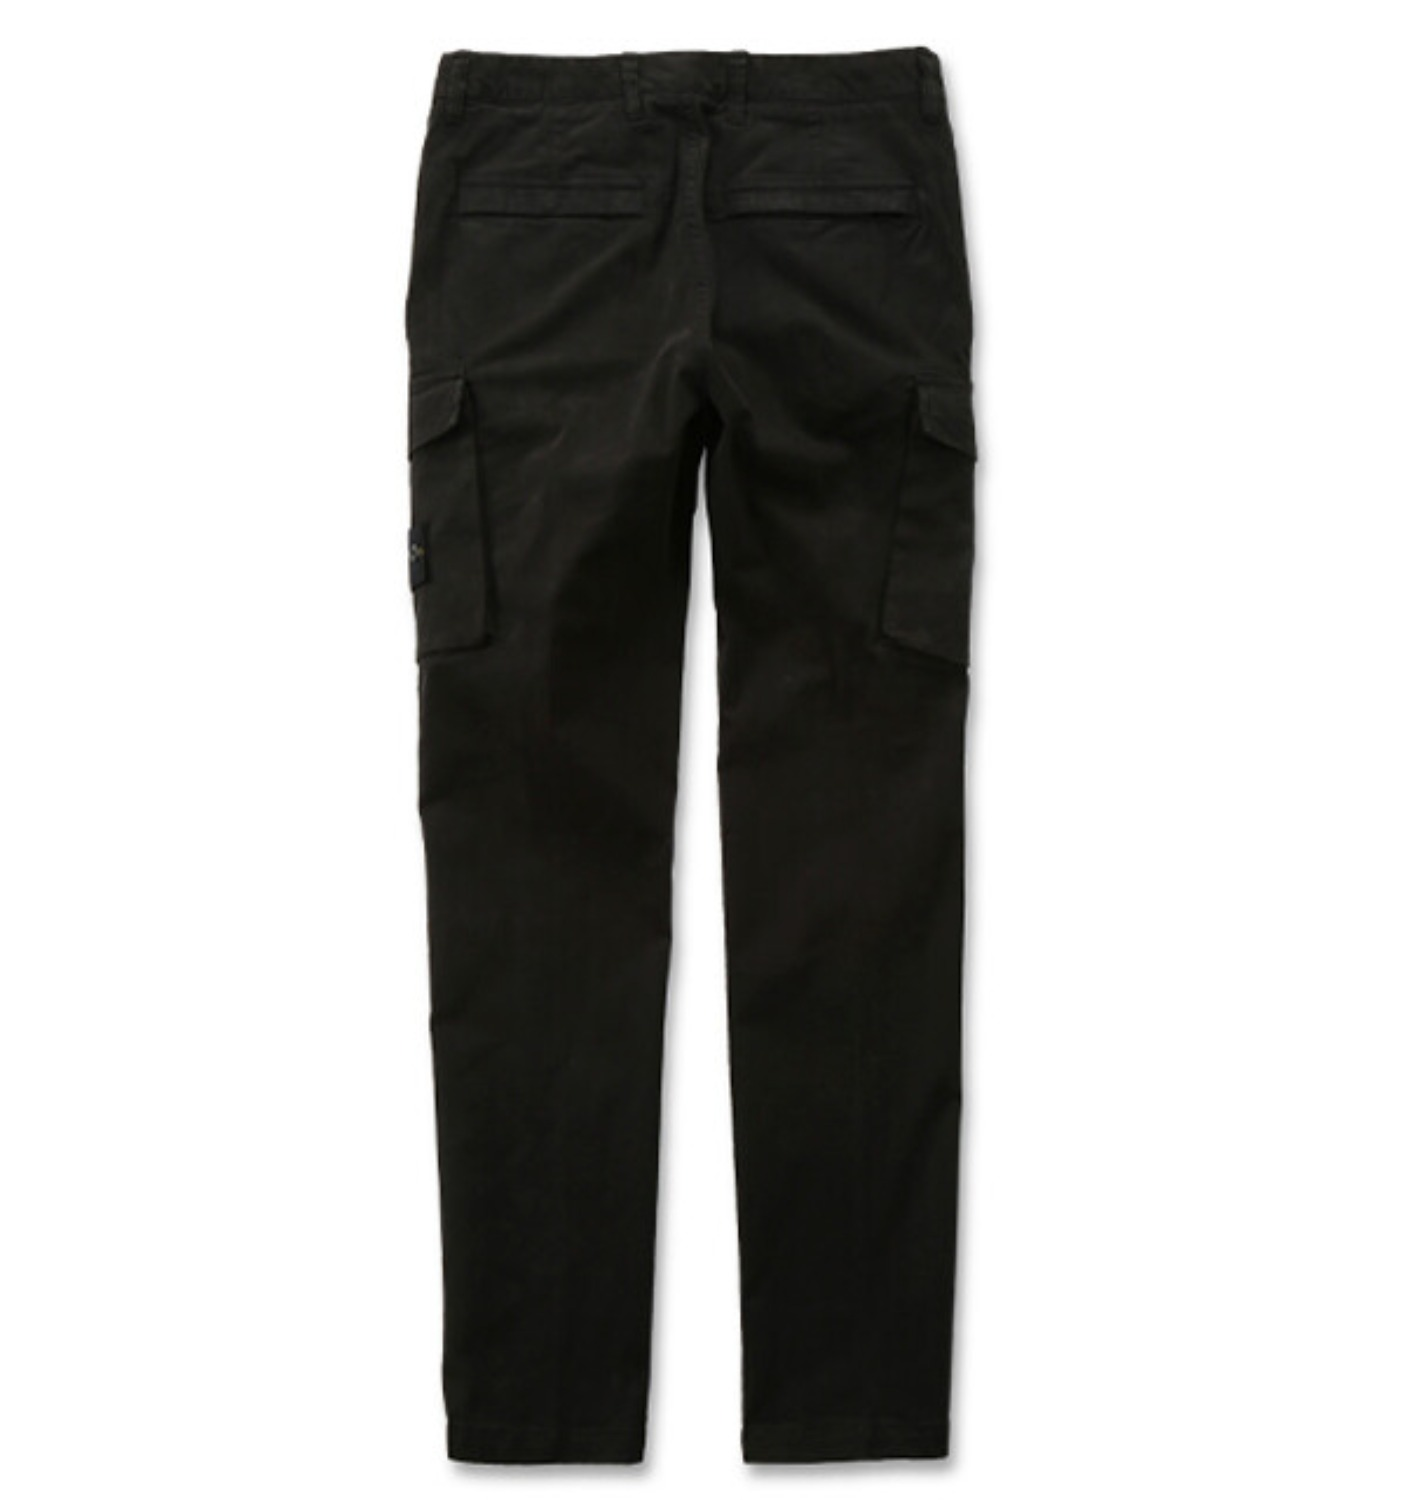 STRETCH BROKEN TWILL COTTON GARMENT DYED OLD EFFECT CARGO PANTS BLACK